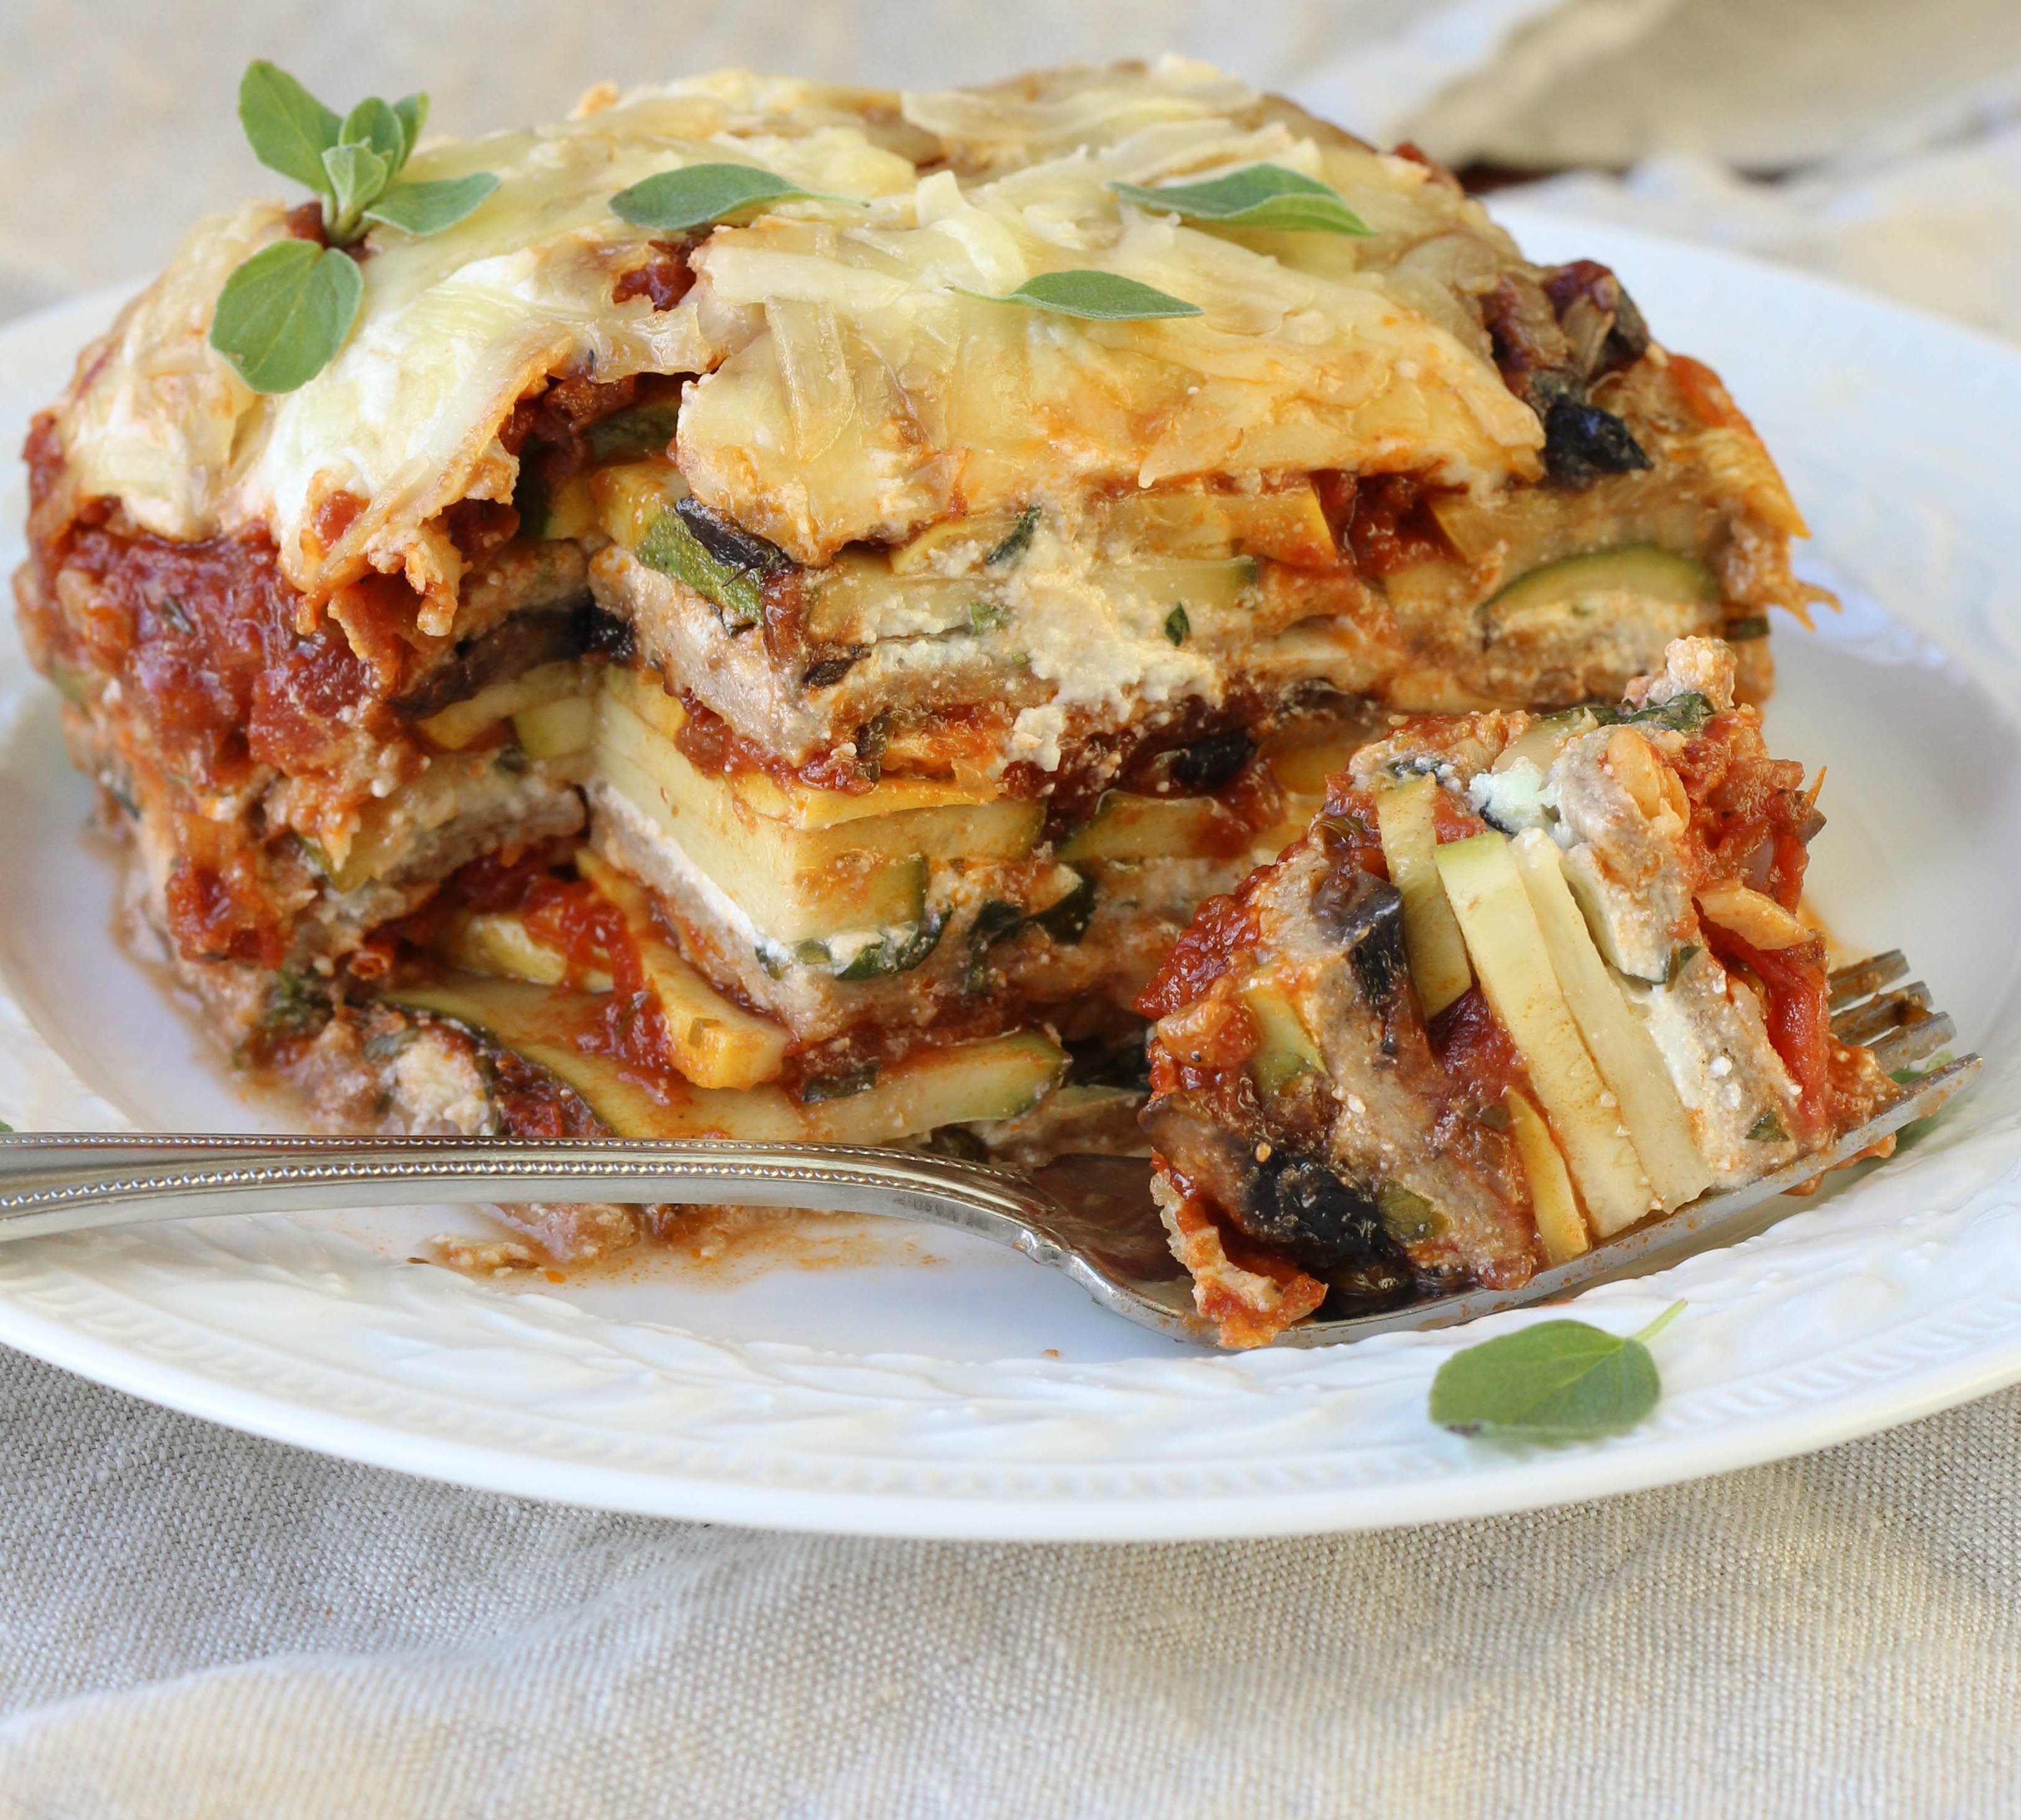 Whole-Wheat Vegetable Lasagna - American Heritage Cooking